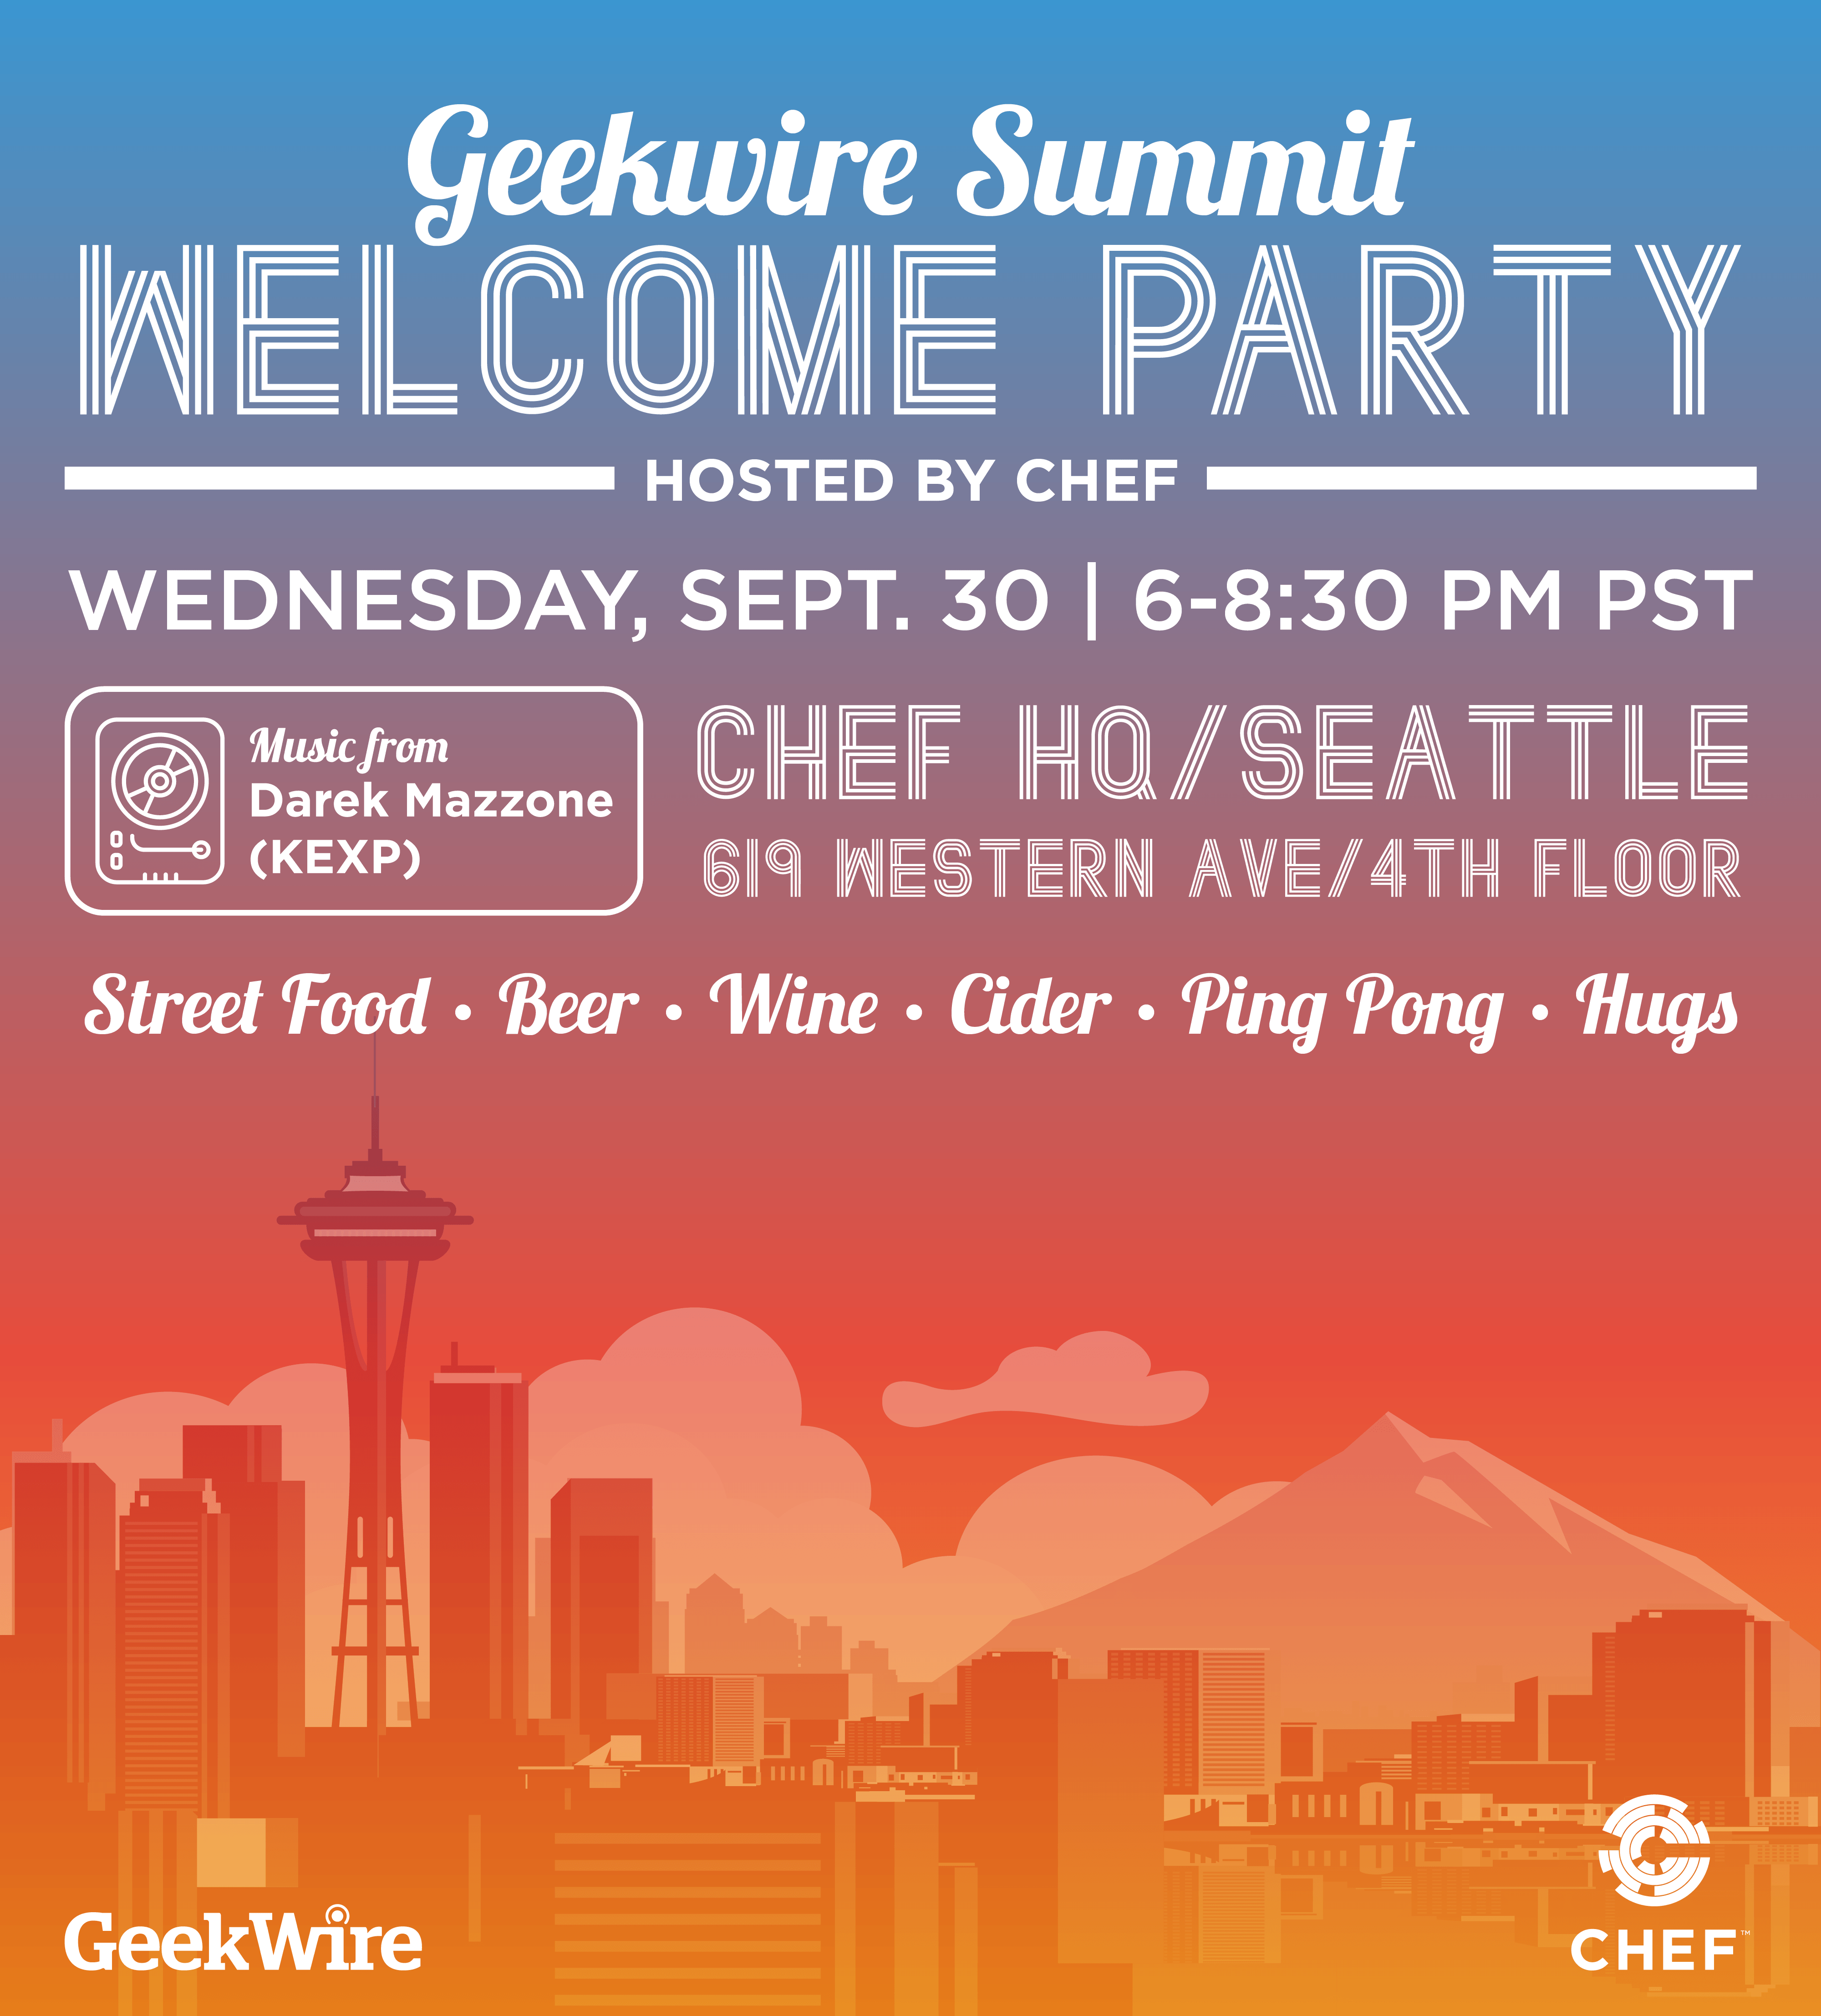 geekwire party poster-01